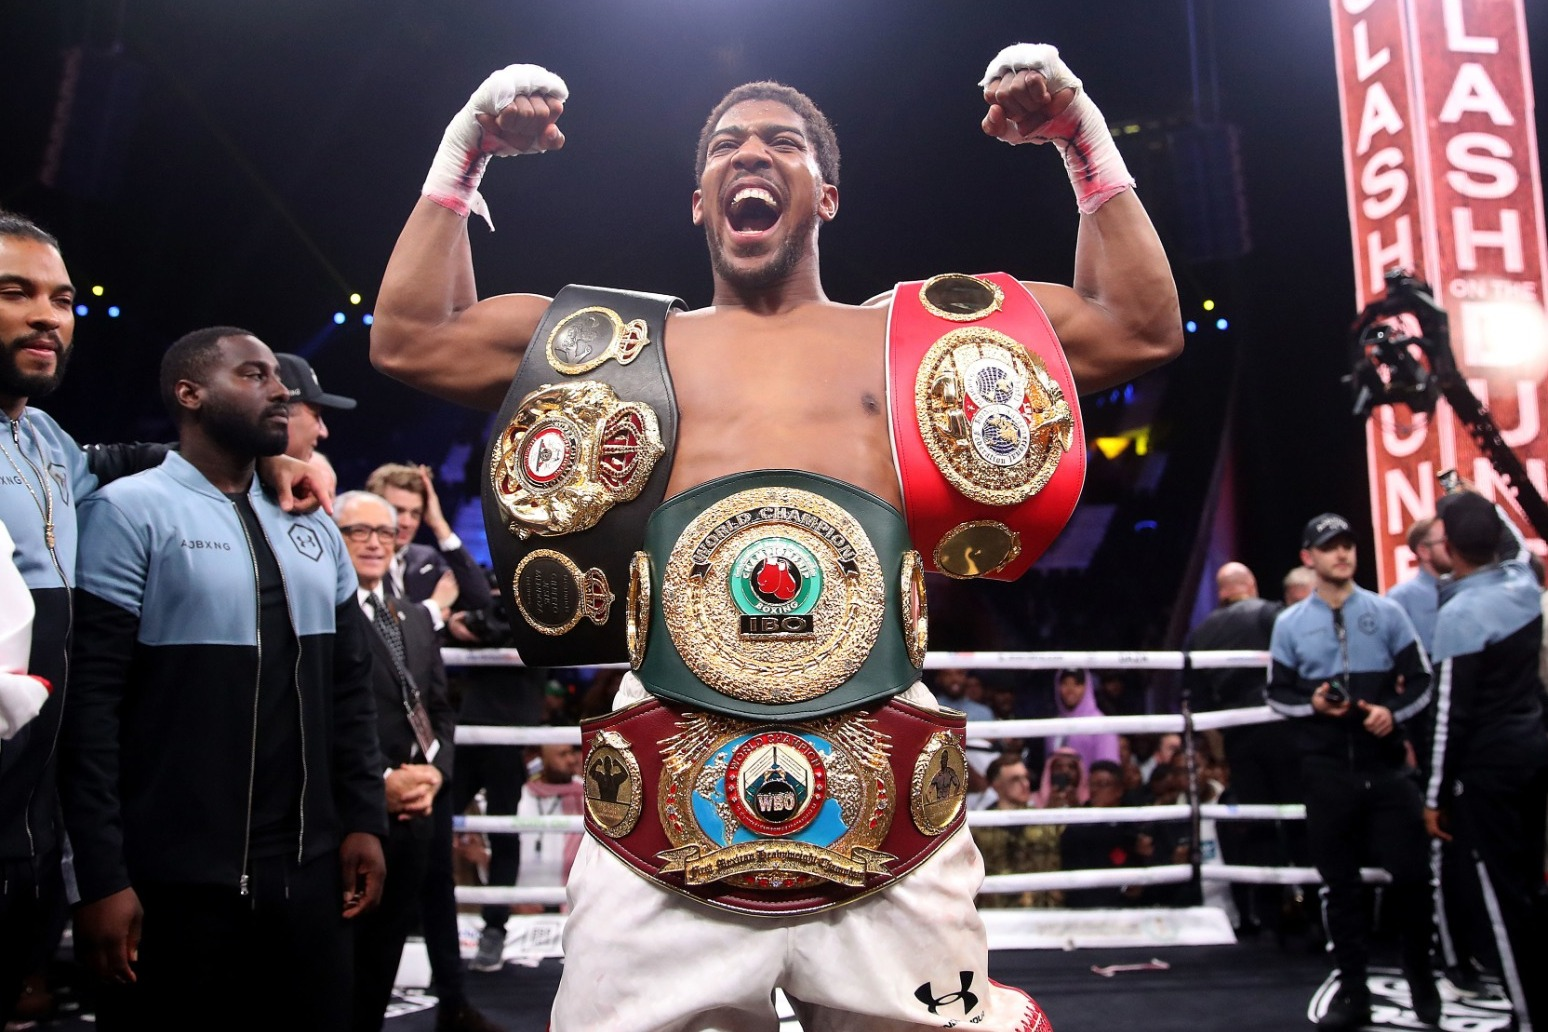 Joshua praises Oleksandr Usyk for 'jumping in at the deep end'